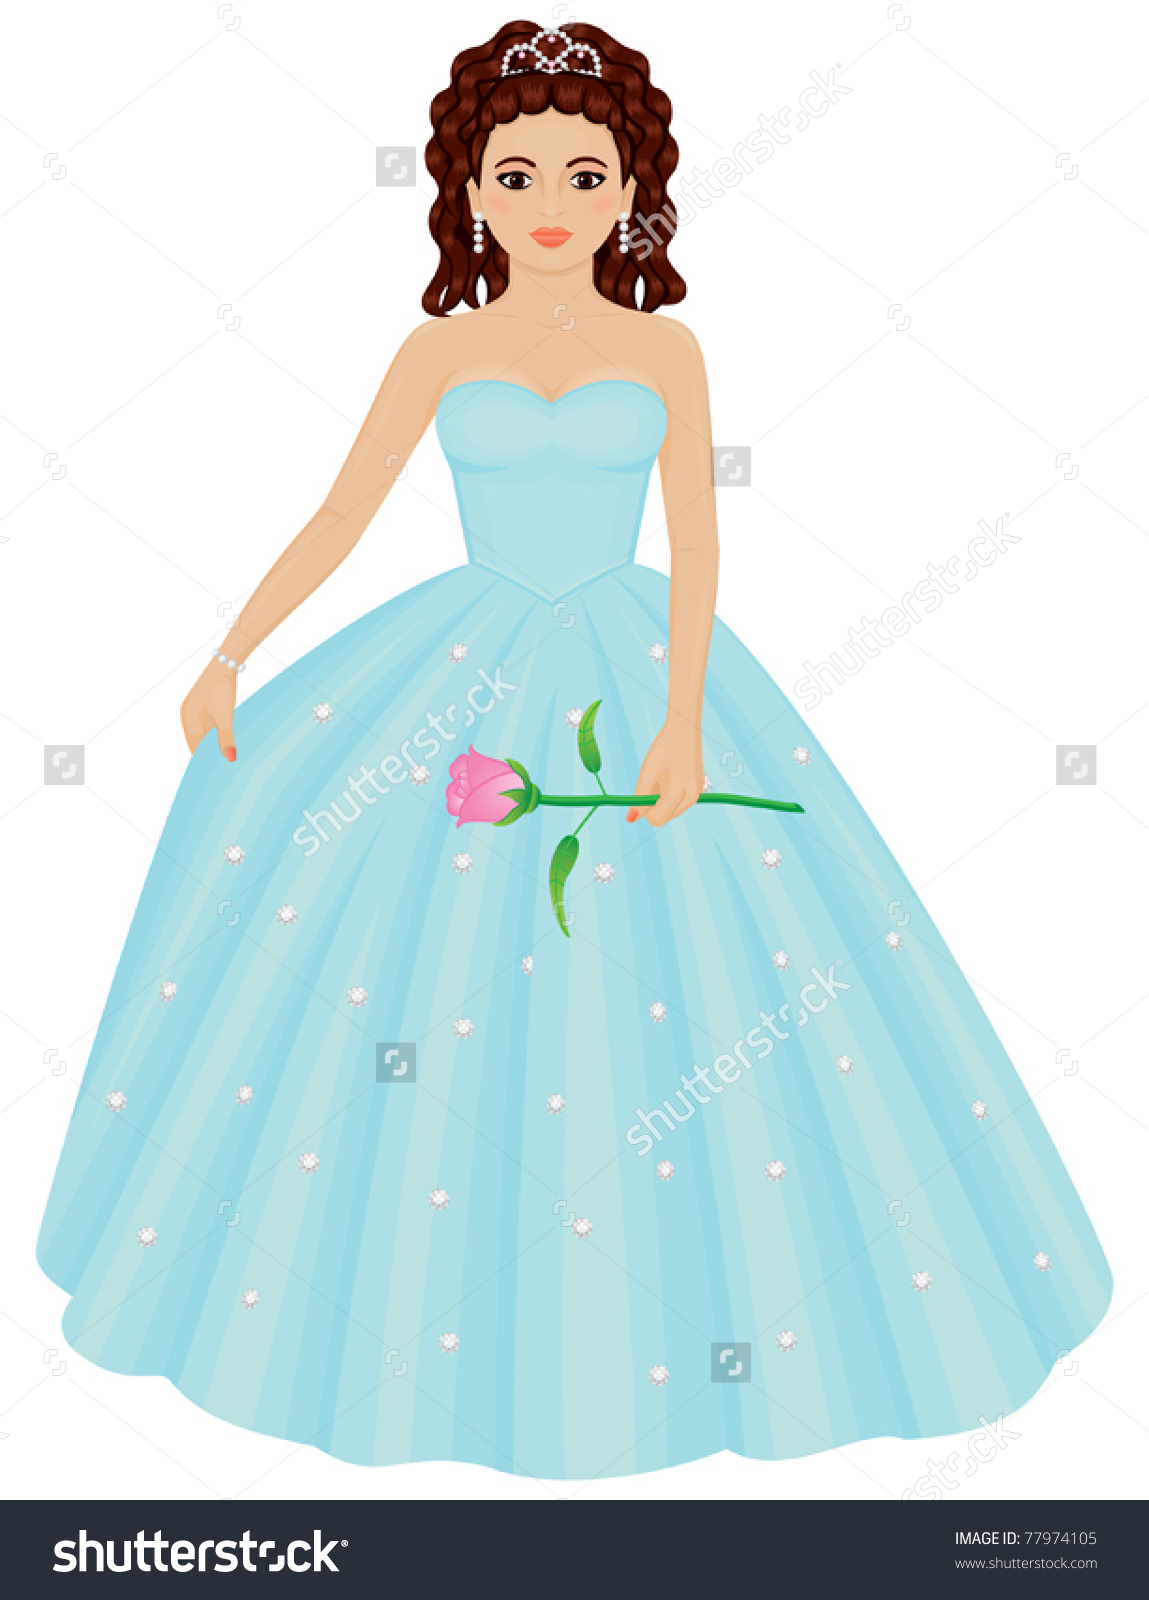 quinceanera purple dress clipart clipground free quinceanera clipart quinceanera clip art free